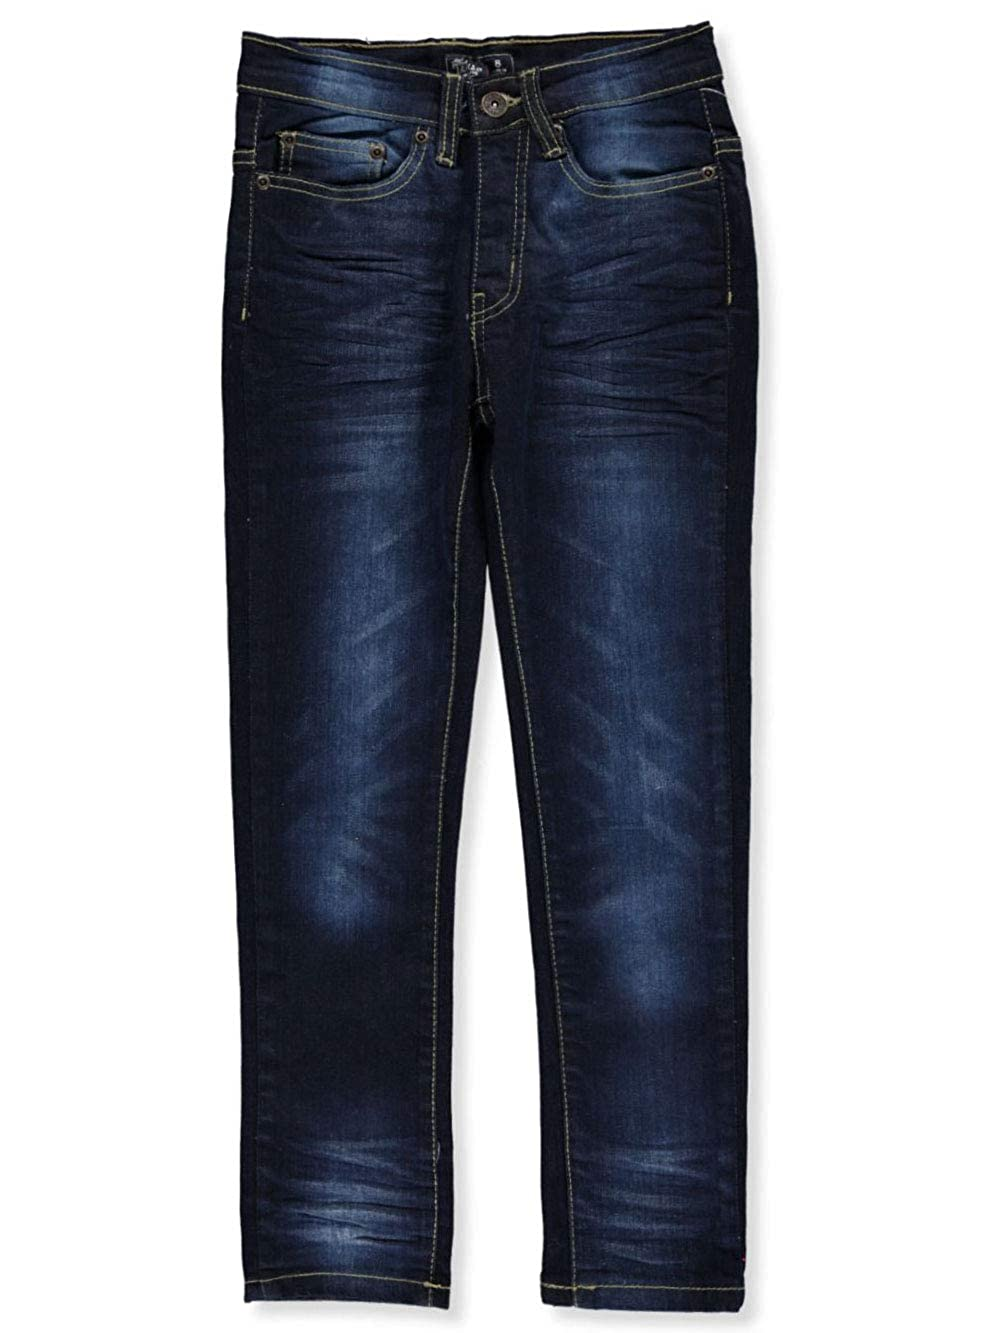 Co Boys Whiskered Fade Jeans The Original J.A.C.H.S